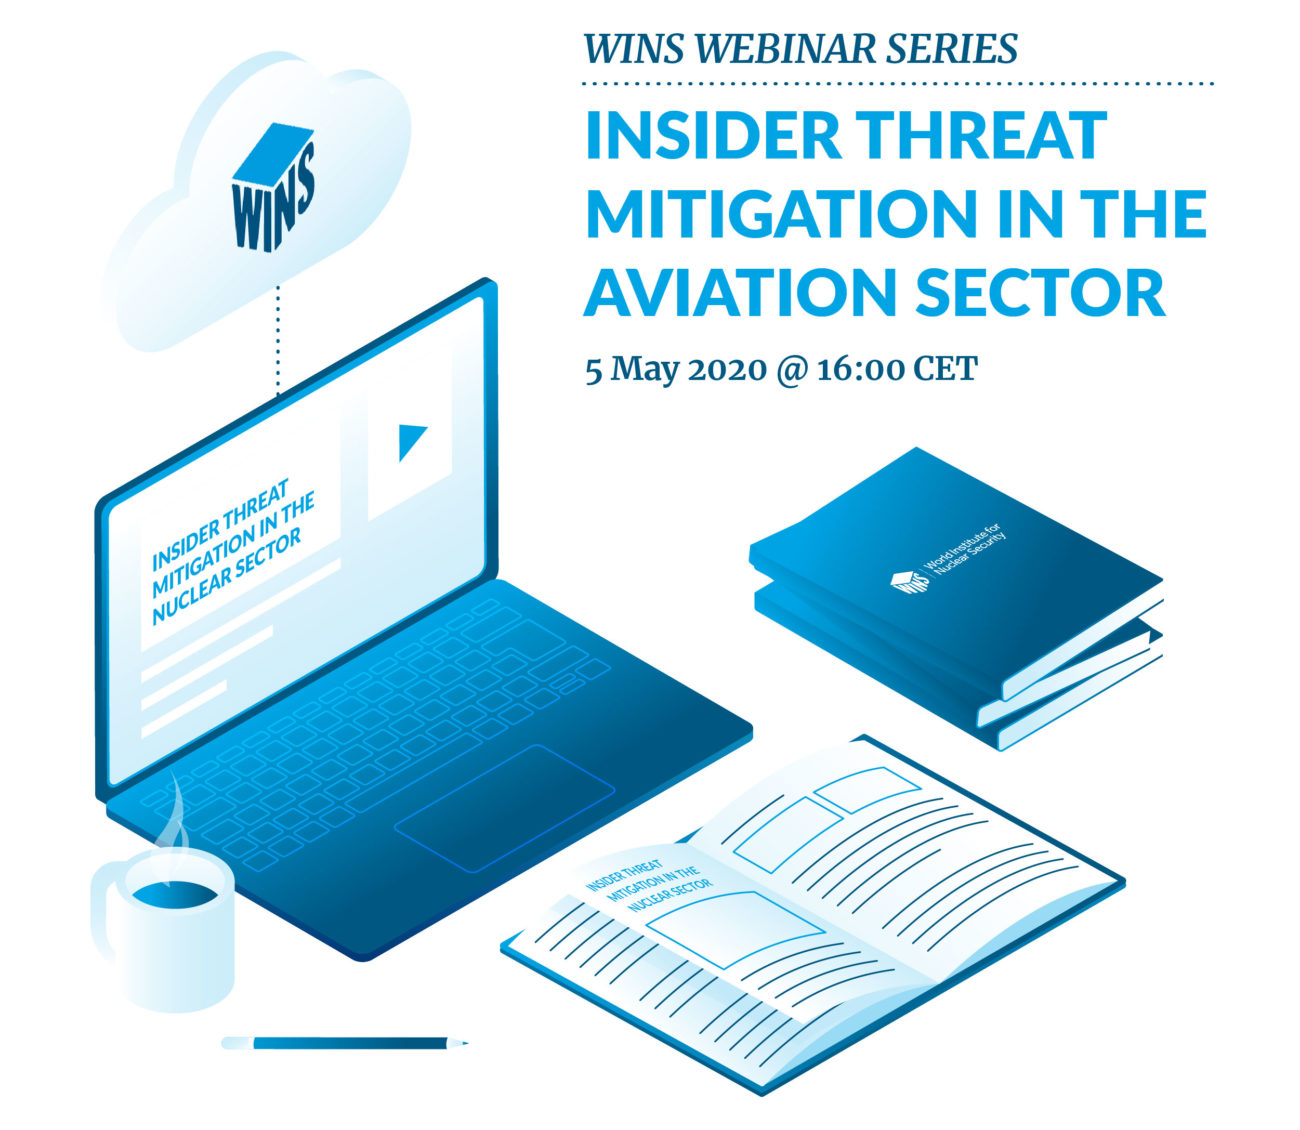 Webinar on Insider Threat Mitigation in the Aviation Sector